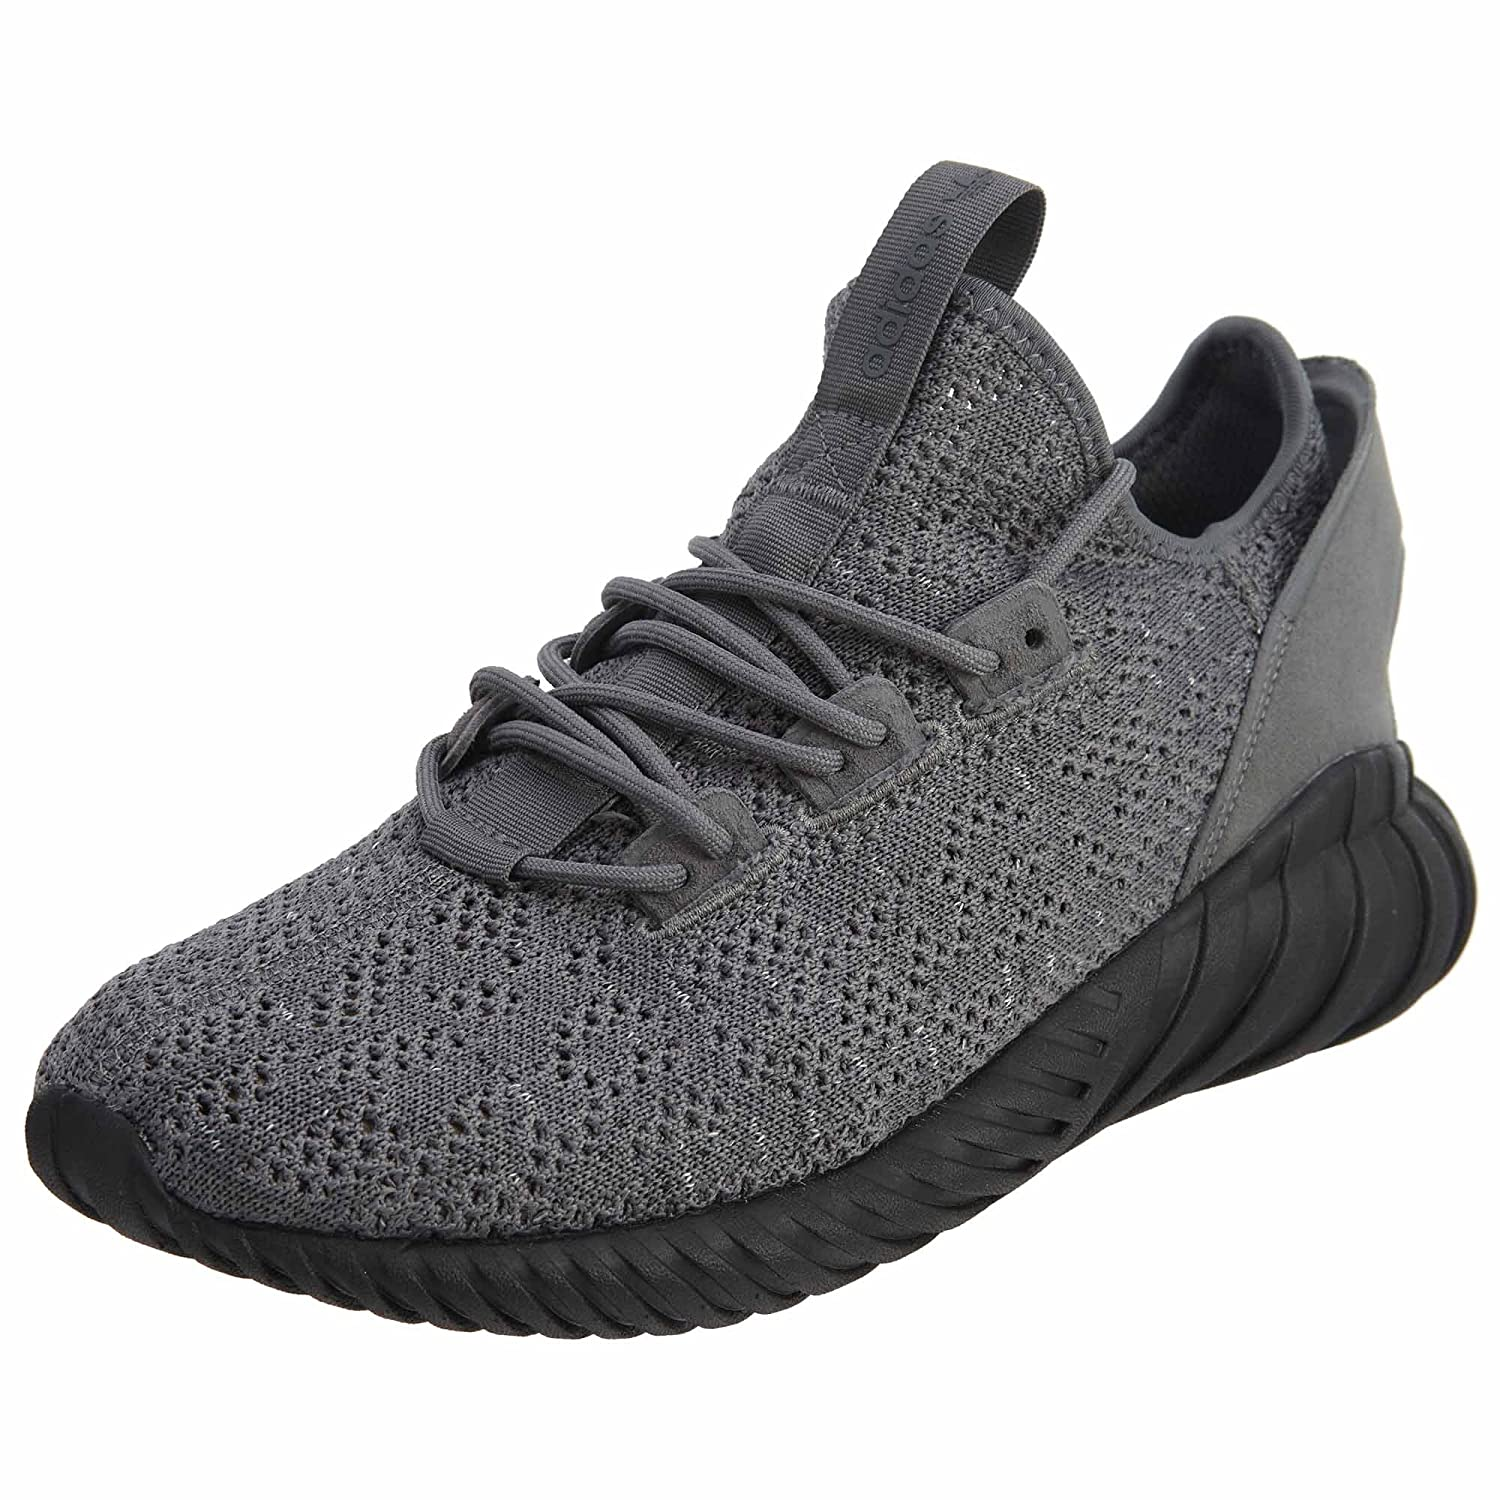 premium selection 4be52 30296 adidas Tubular Doom Sock PK Mens Shoes Grey/Core Black/Footwear White  by3564 (8.5 M US)